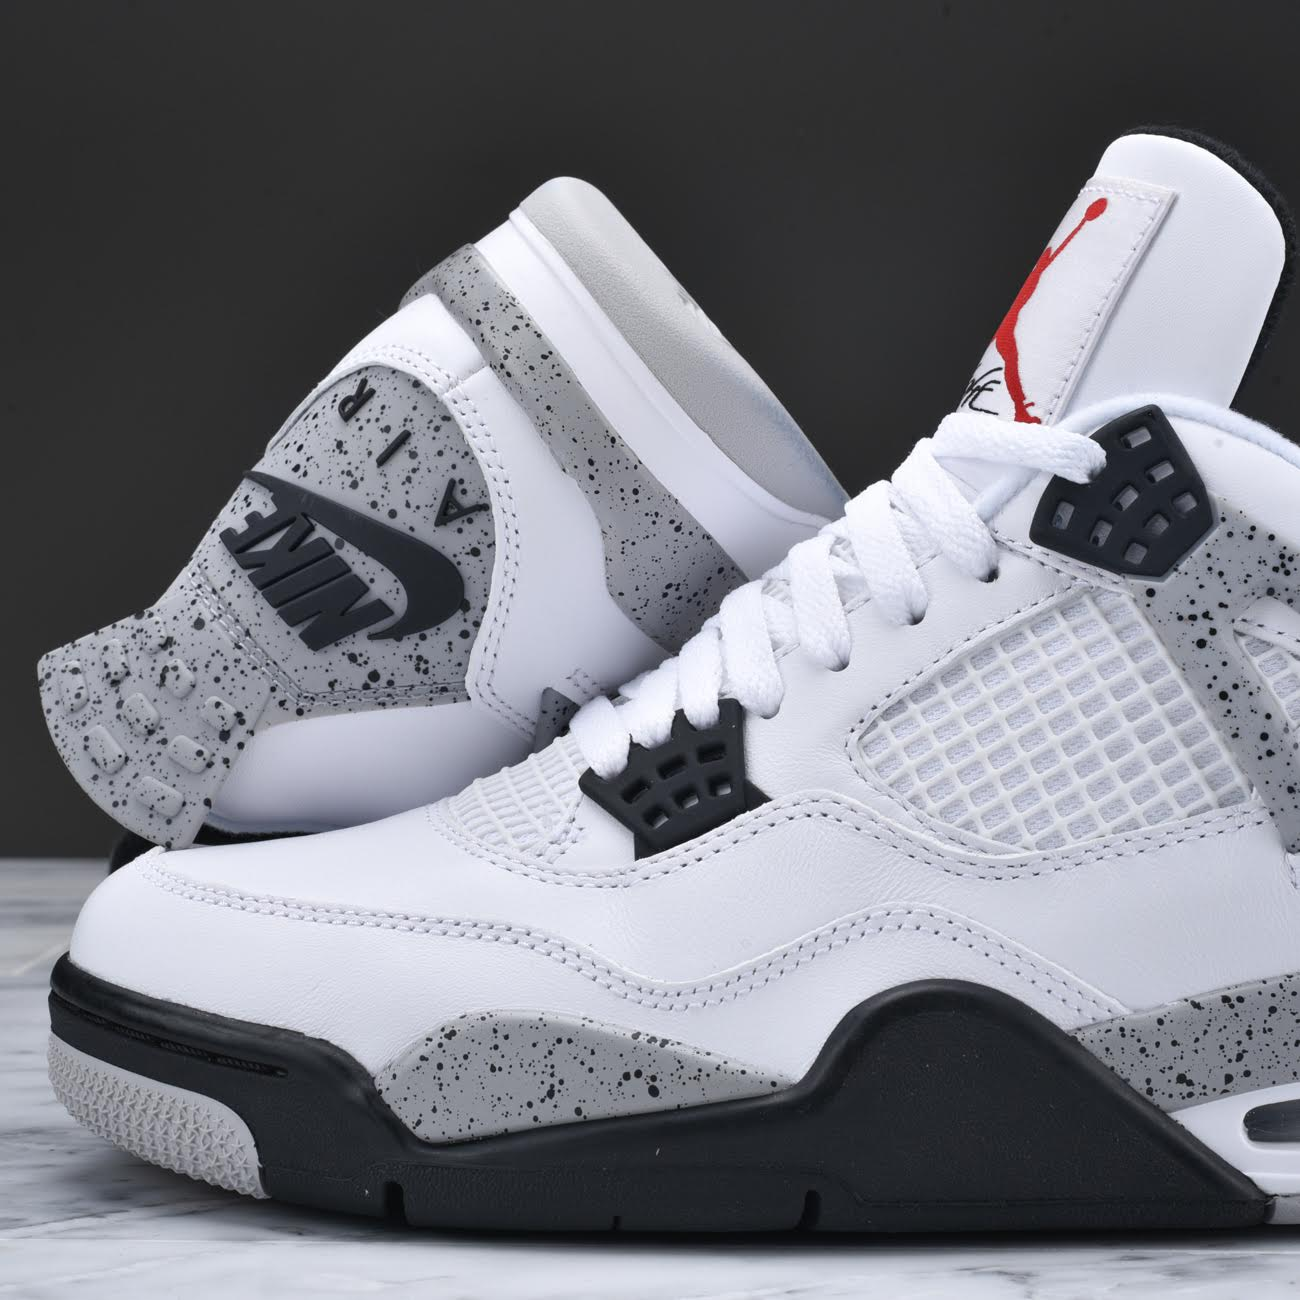 22b17fa6522 What To Wear With Jordan Retro 4 White Cement Jordan 4 White Cement On Feet